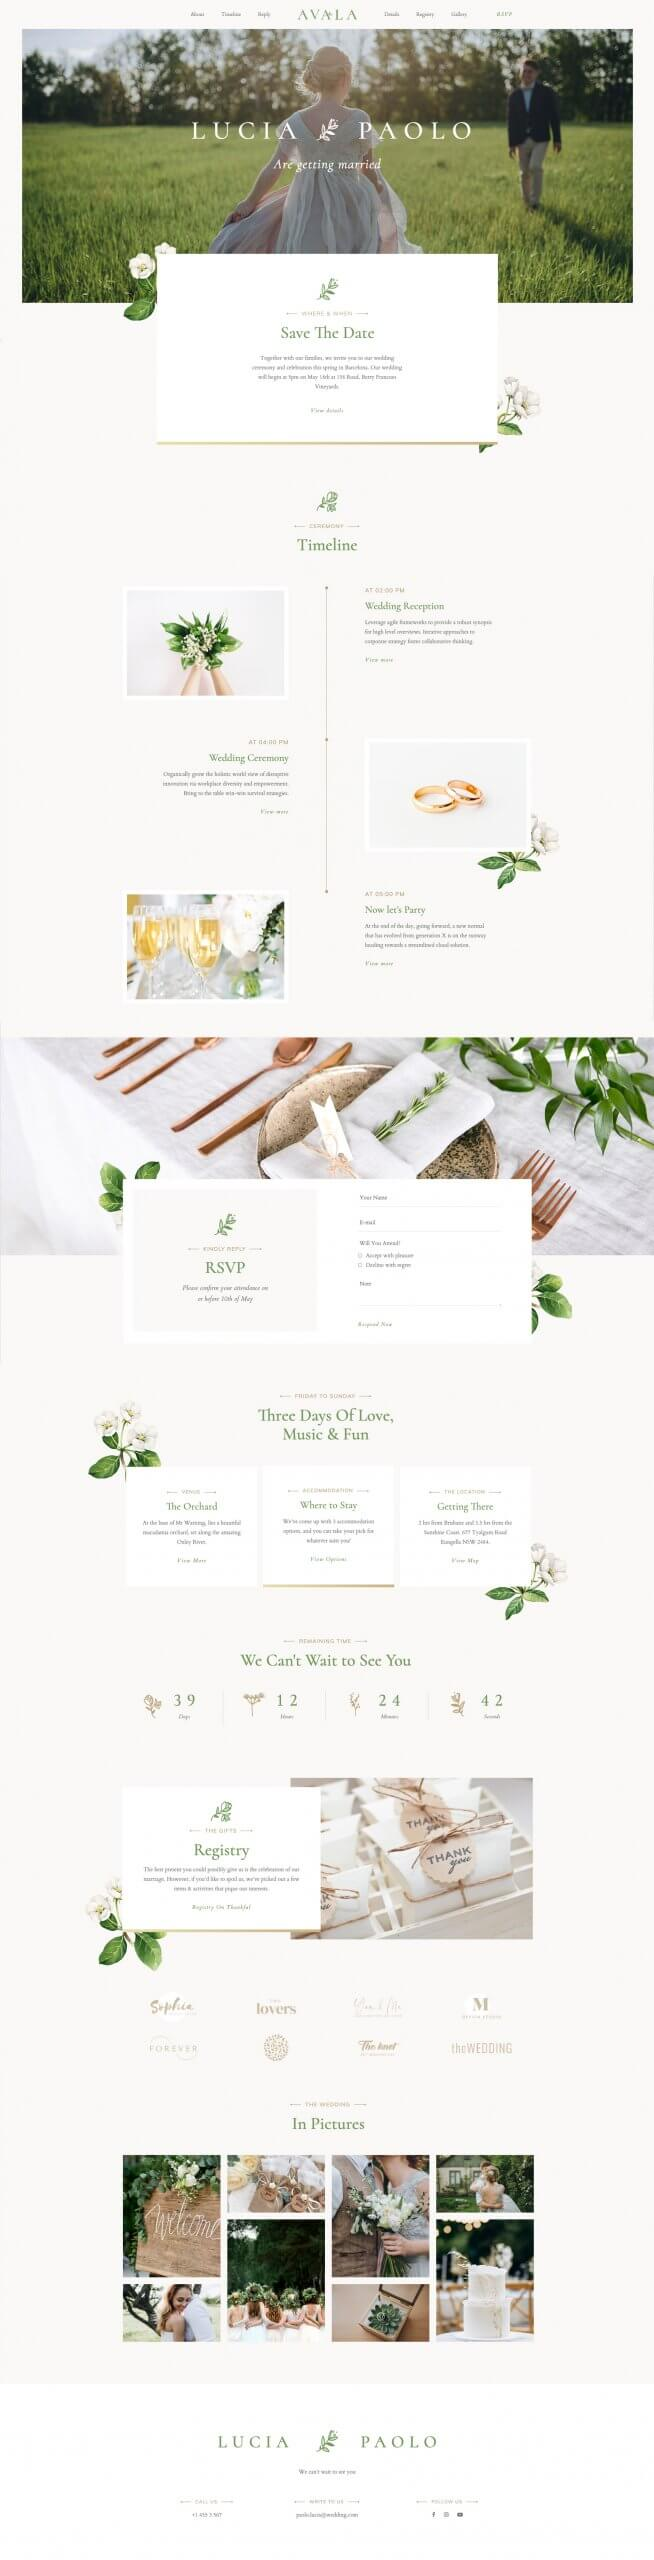 http://avala.bold-themes.com/wp-content/uploads/2021/02/Spring-Home-03-scaled.jpg